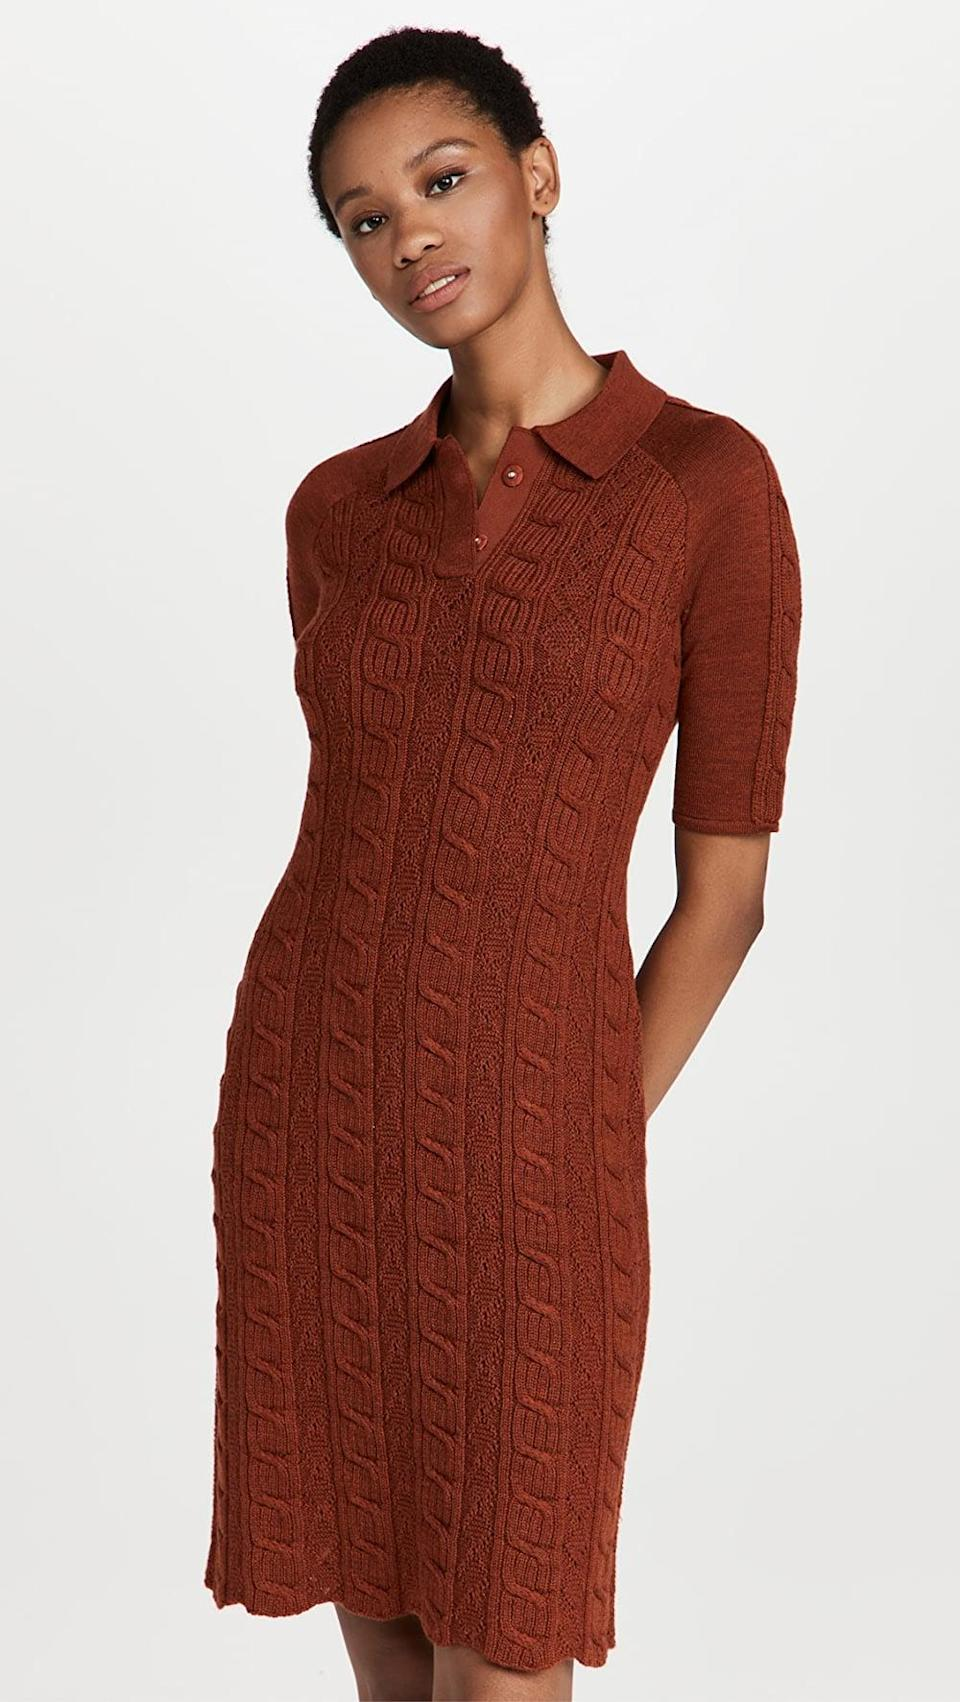 <p>Stay warm while looking stylish in this <span>Victor Glemaud Sweater Dress</span> ($650). It's an investment you'll love for years to come.</p>